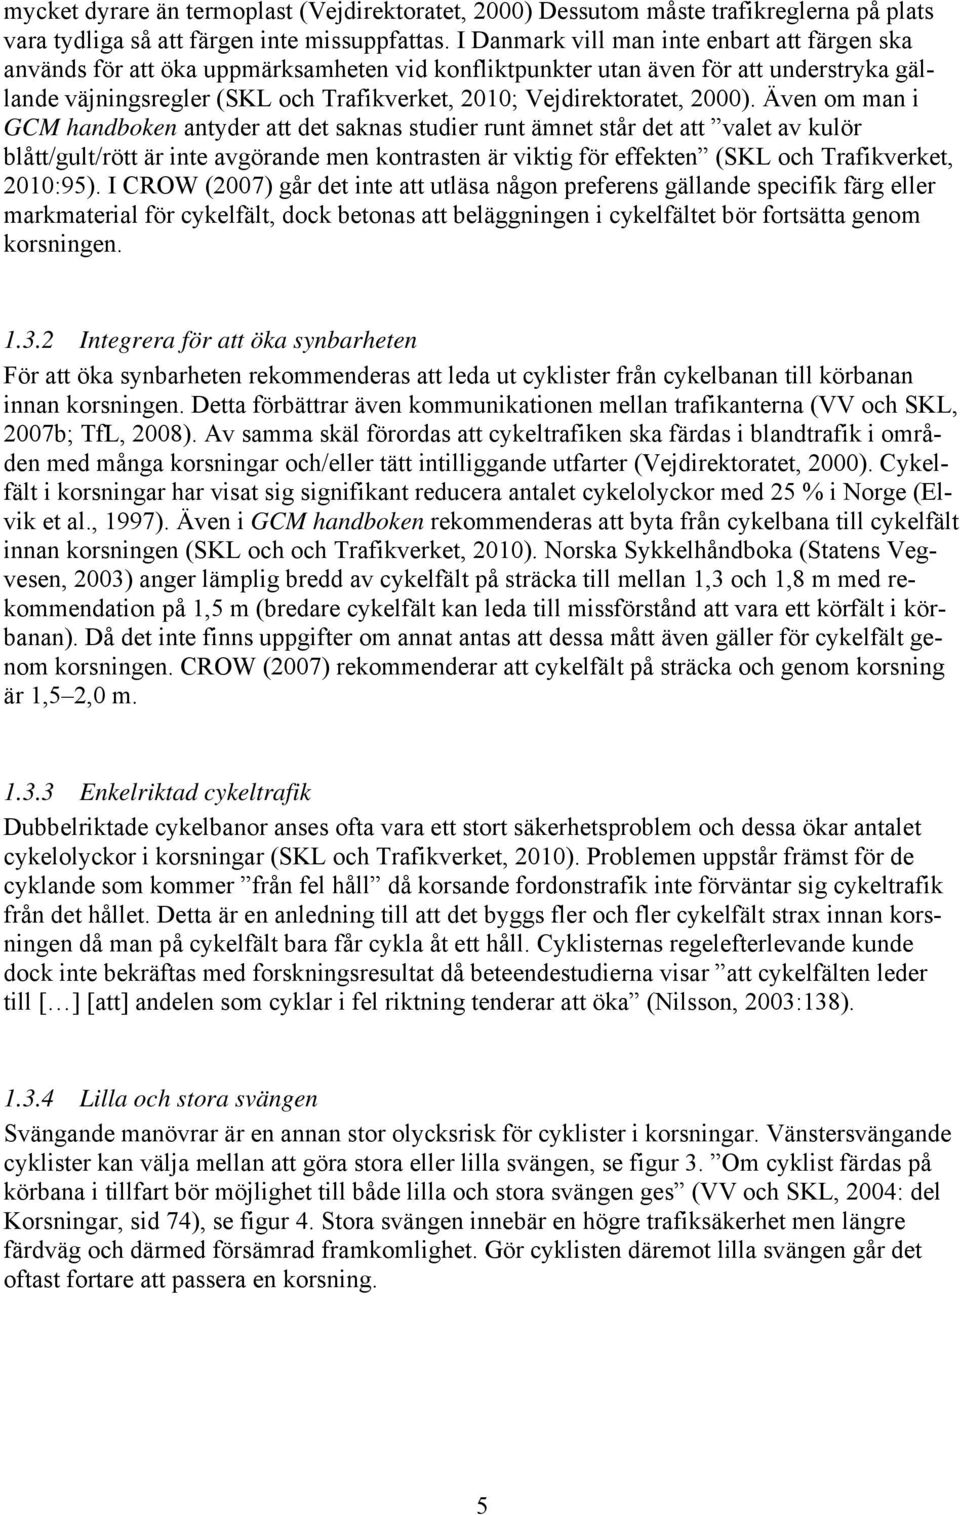 Vejdirektoratet, 2000).